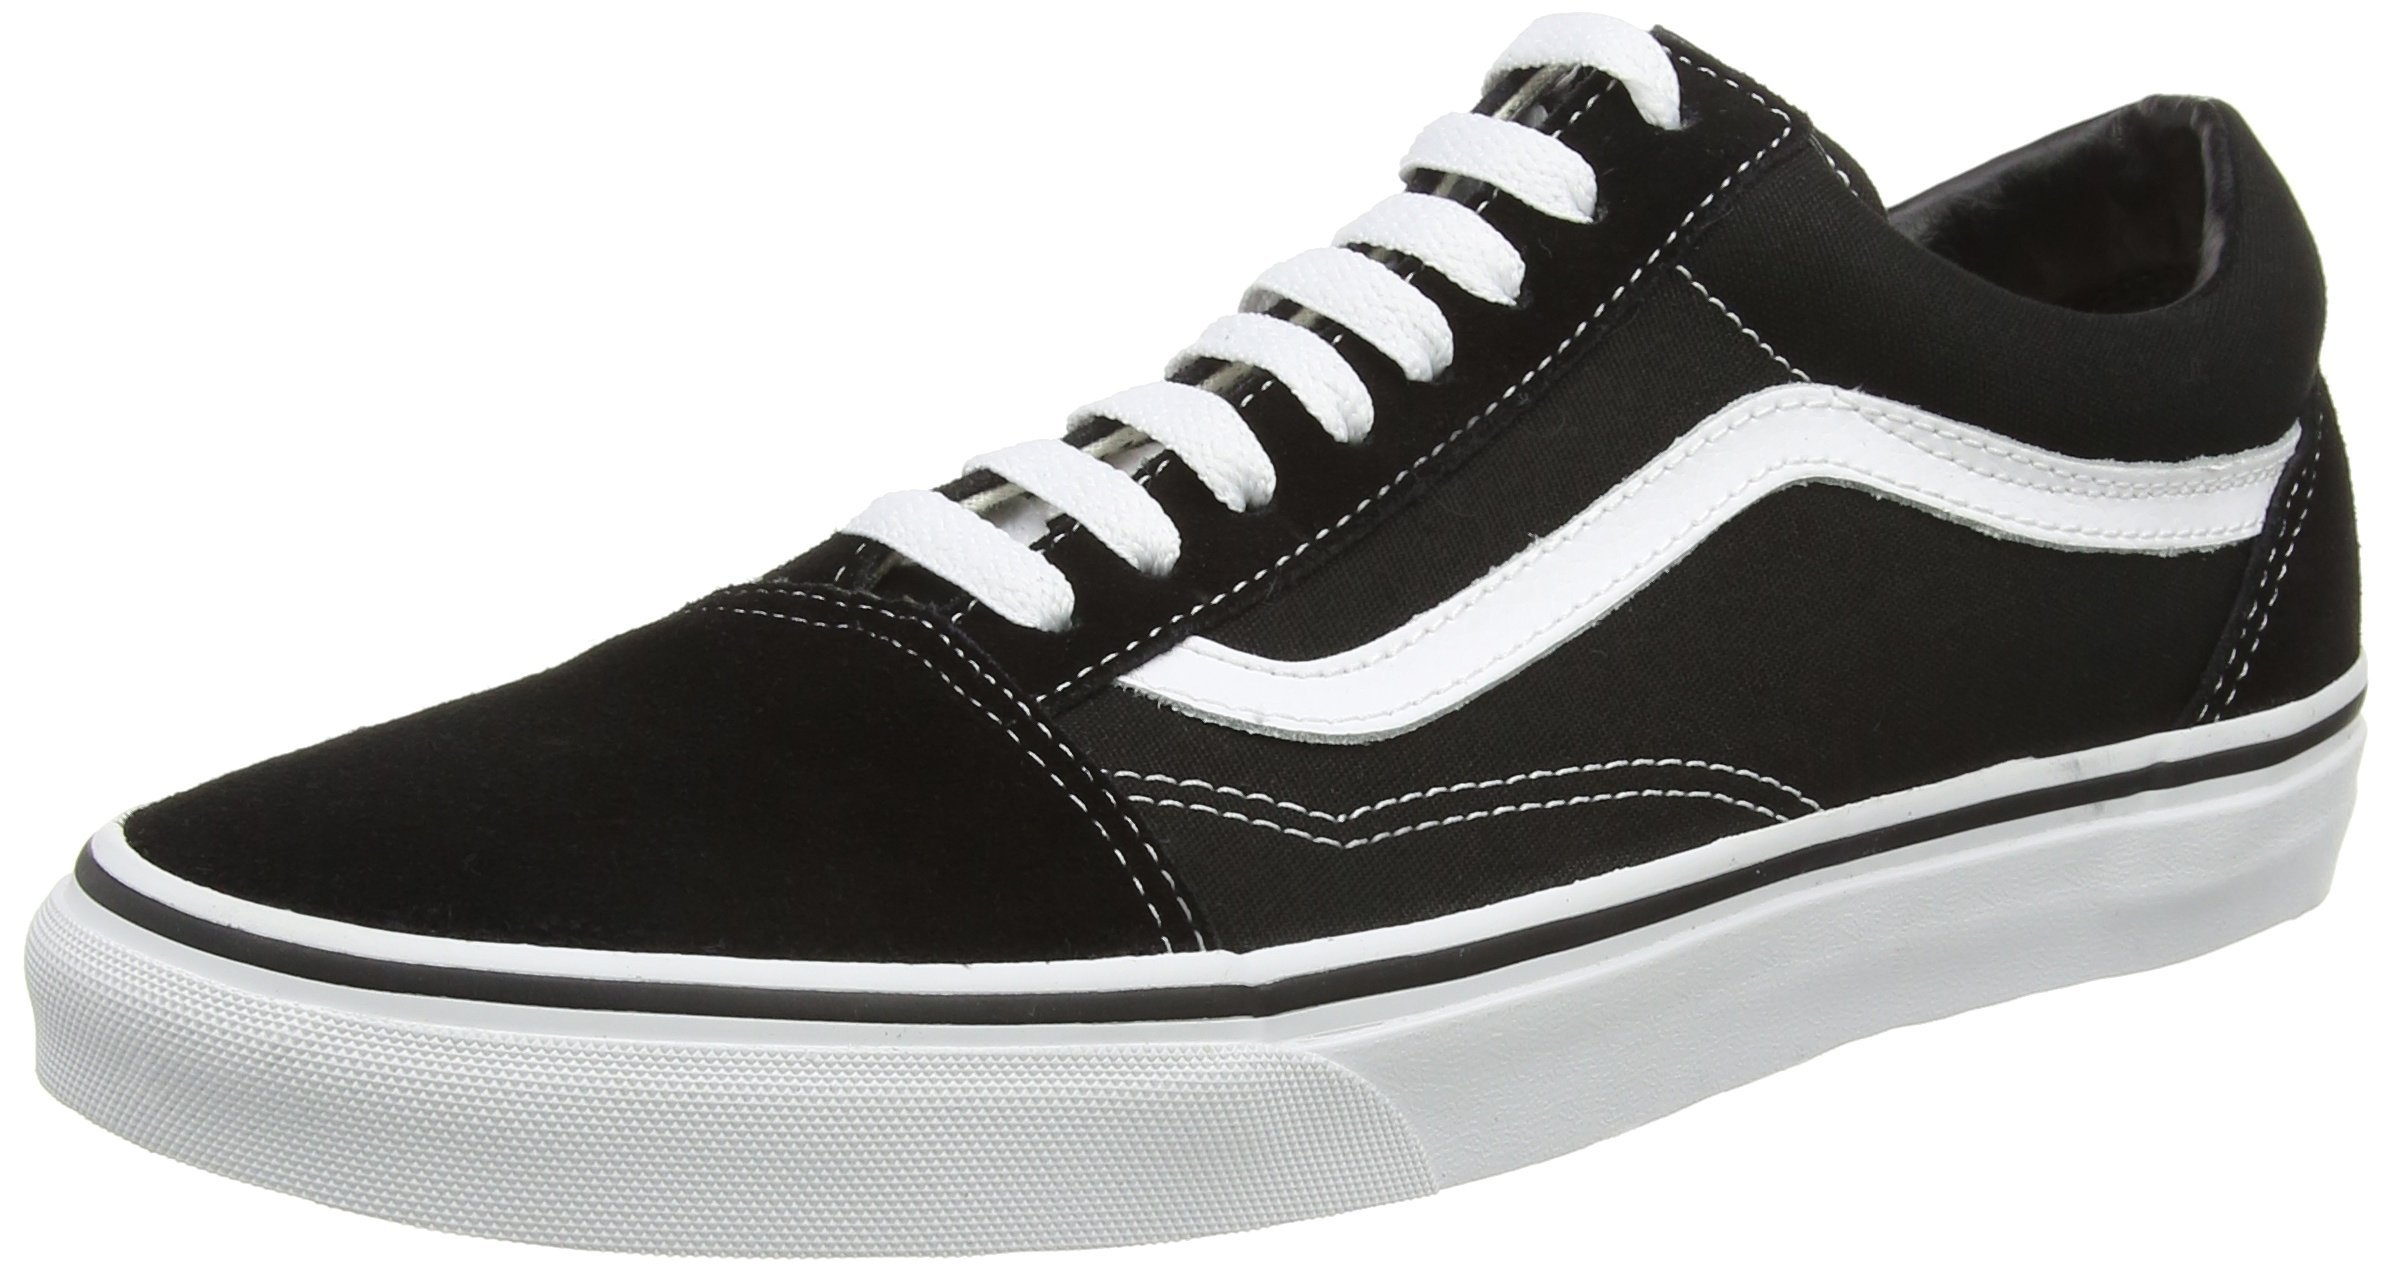 Vans Unisex Old Skool Black/White Skate Shoe 12 Men US by Vans